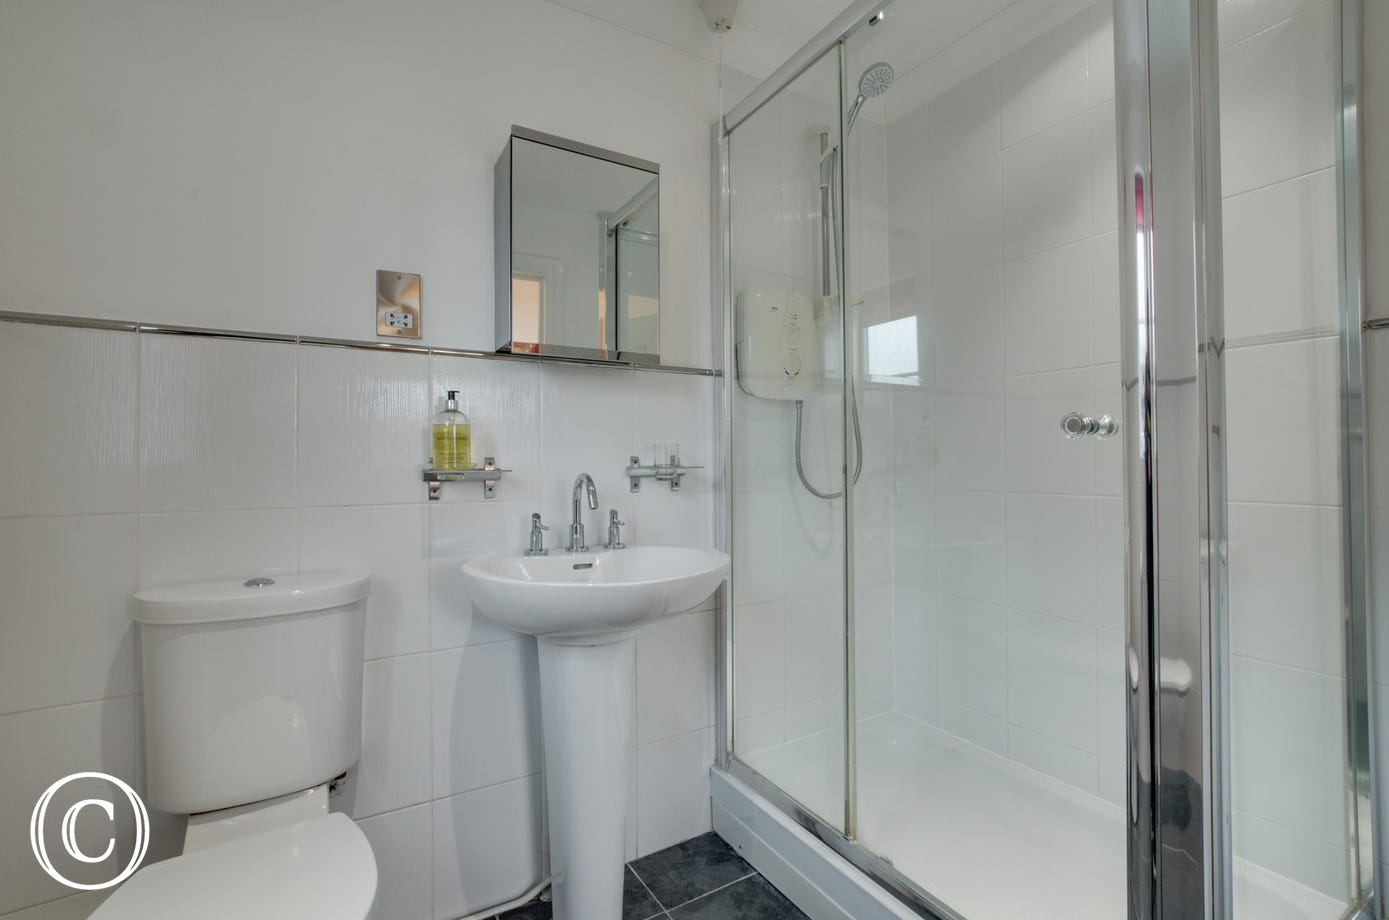 Bedroom 1 ensuite with shower, wc & washbasin